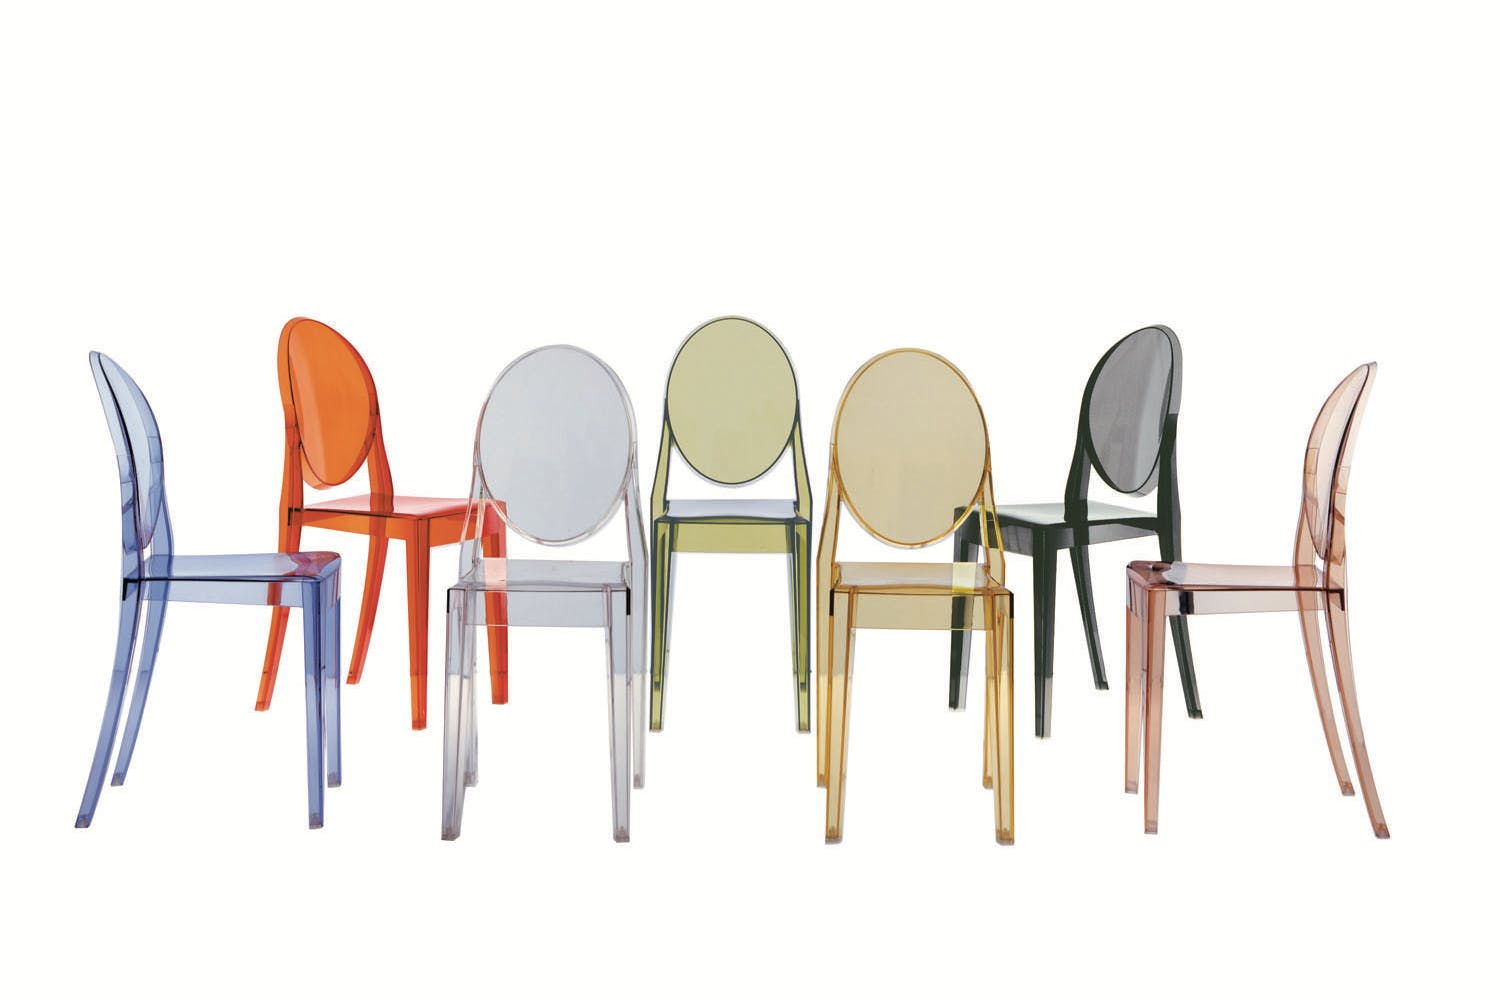 Victoria ghost chair by philippe starck for kartell for Chaise ghost kartell